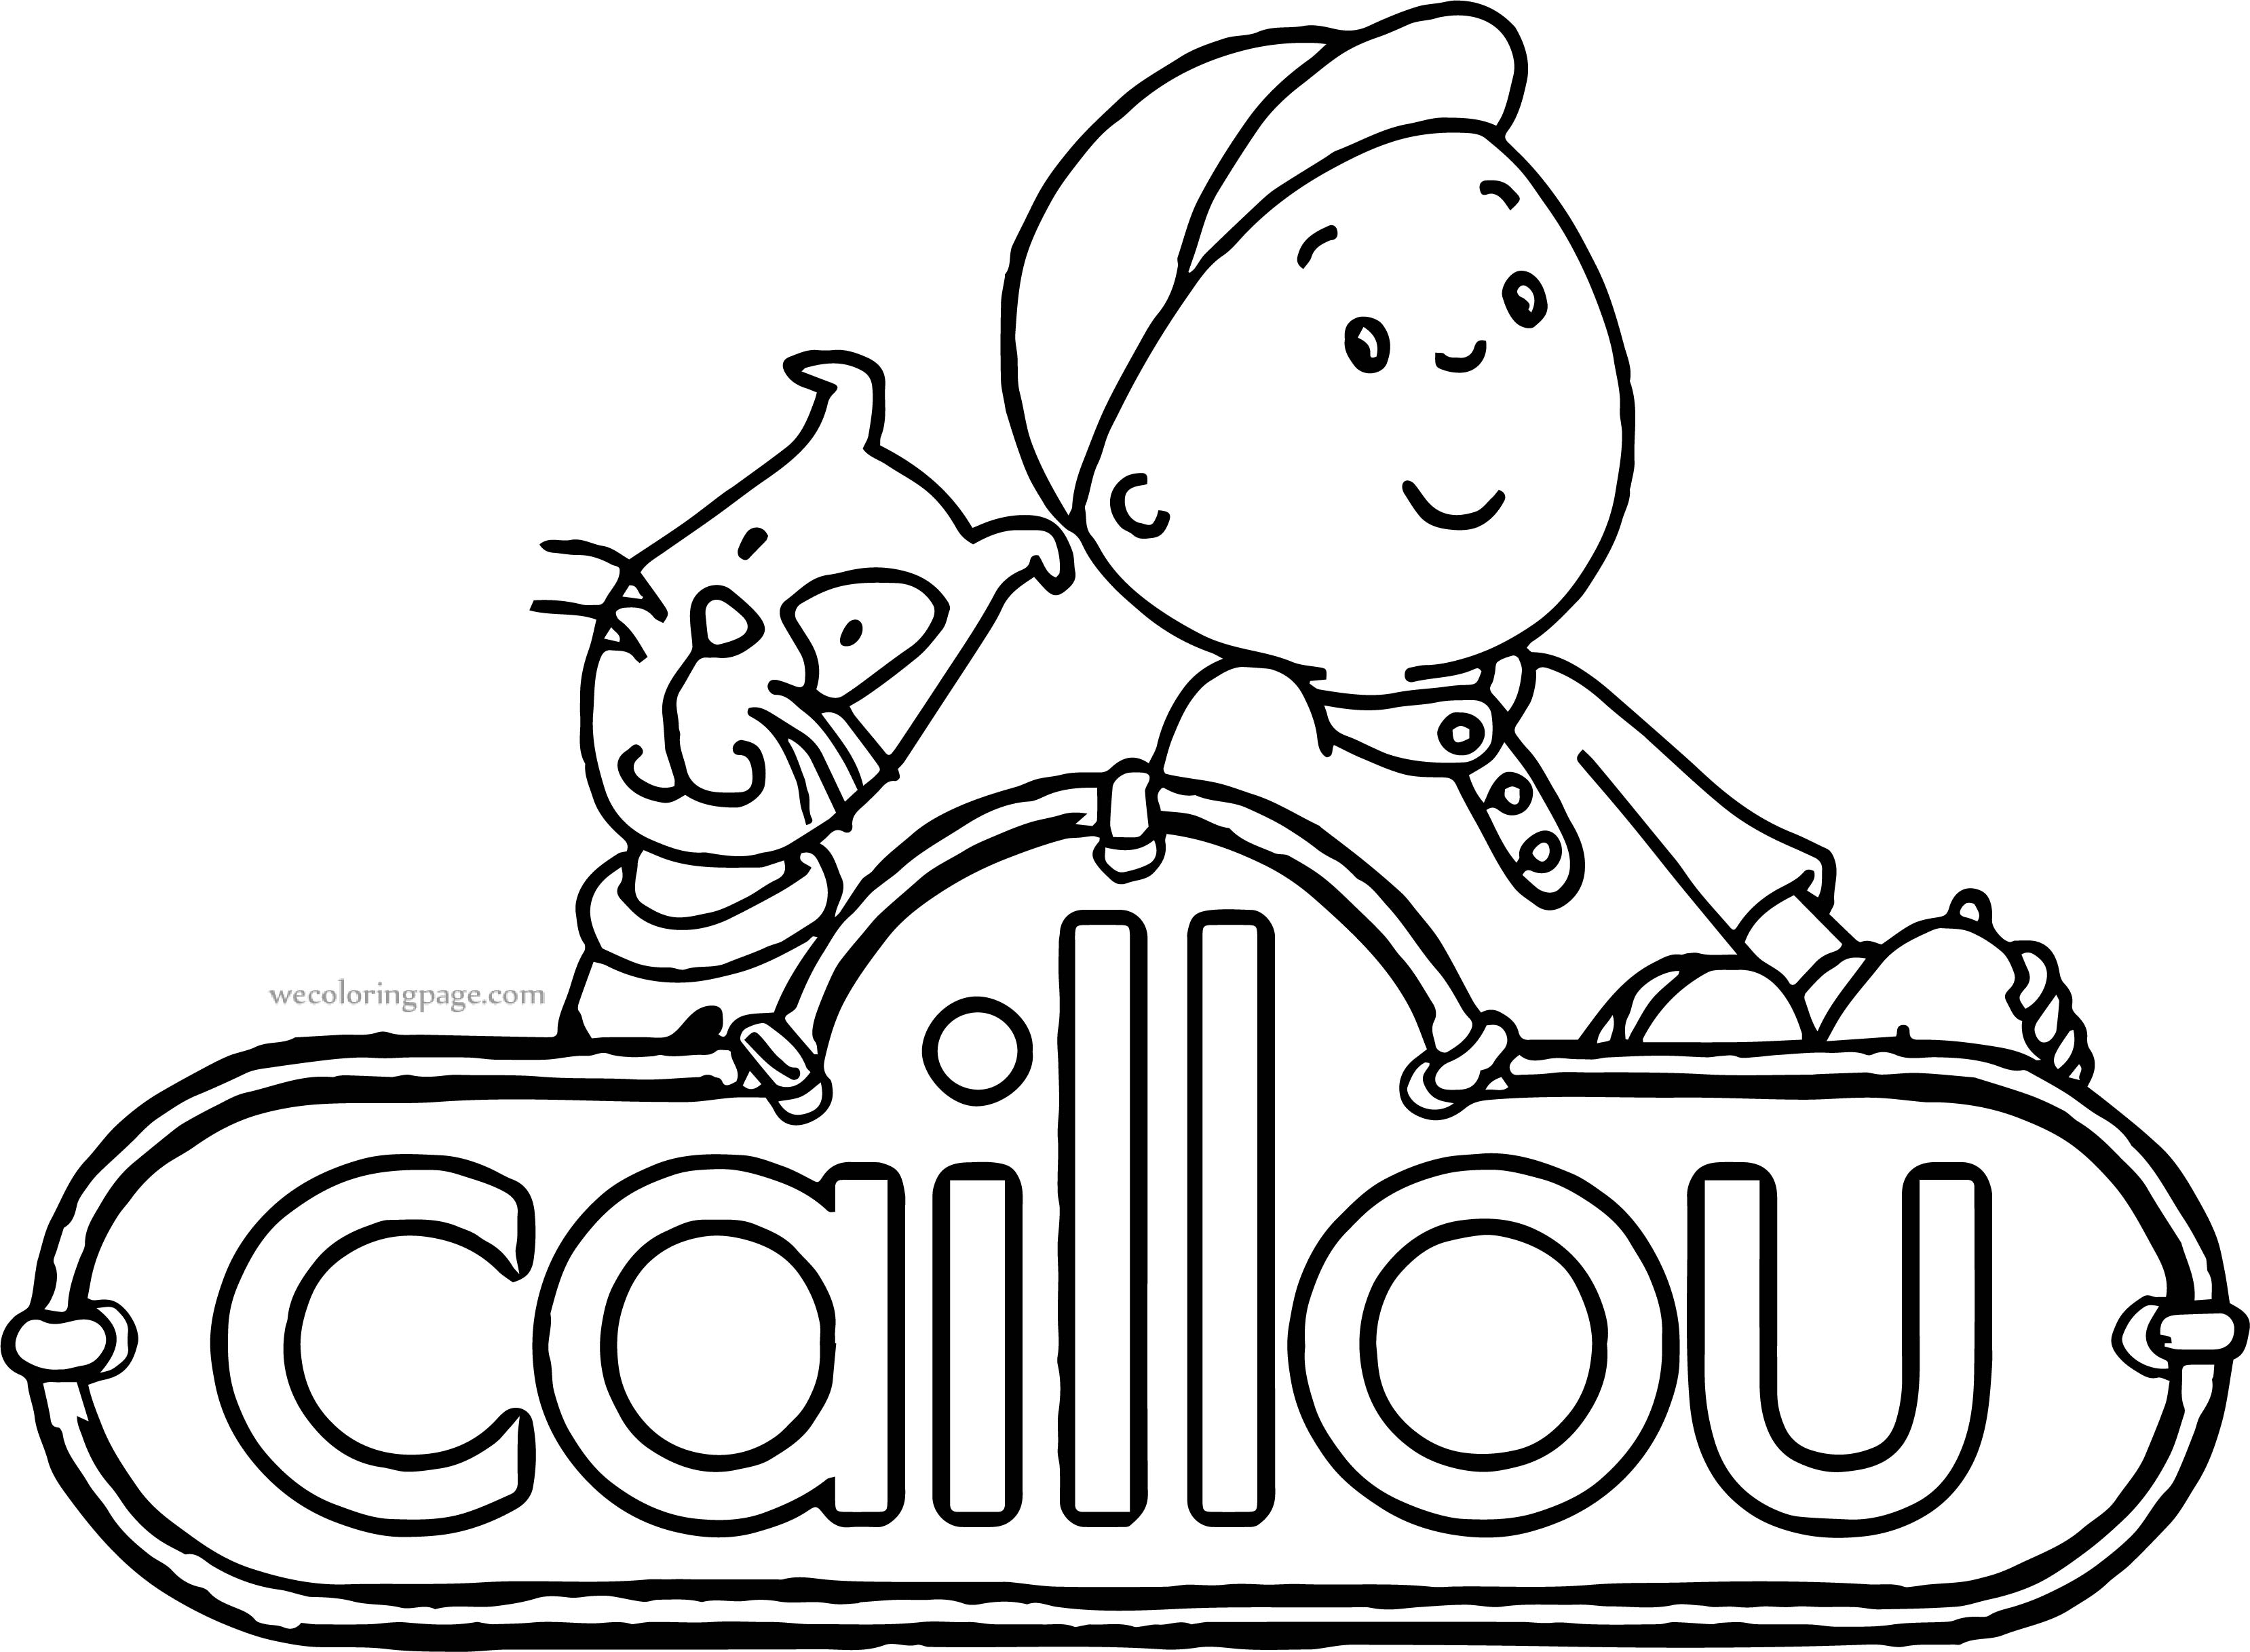 Caillou Text Cat Coloring Page